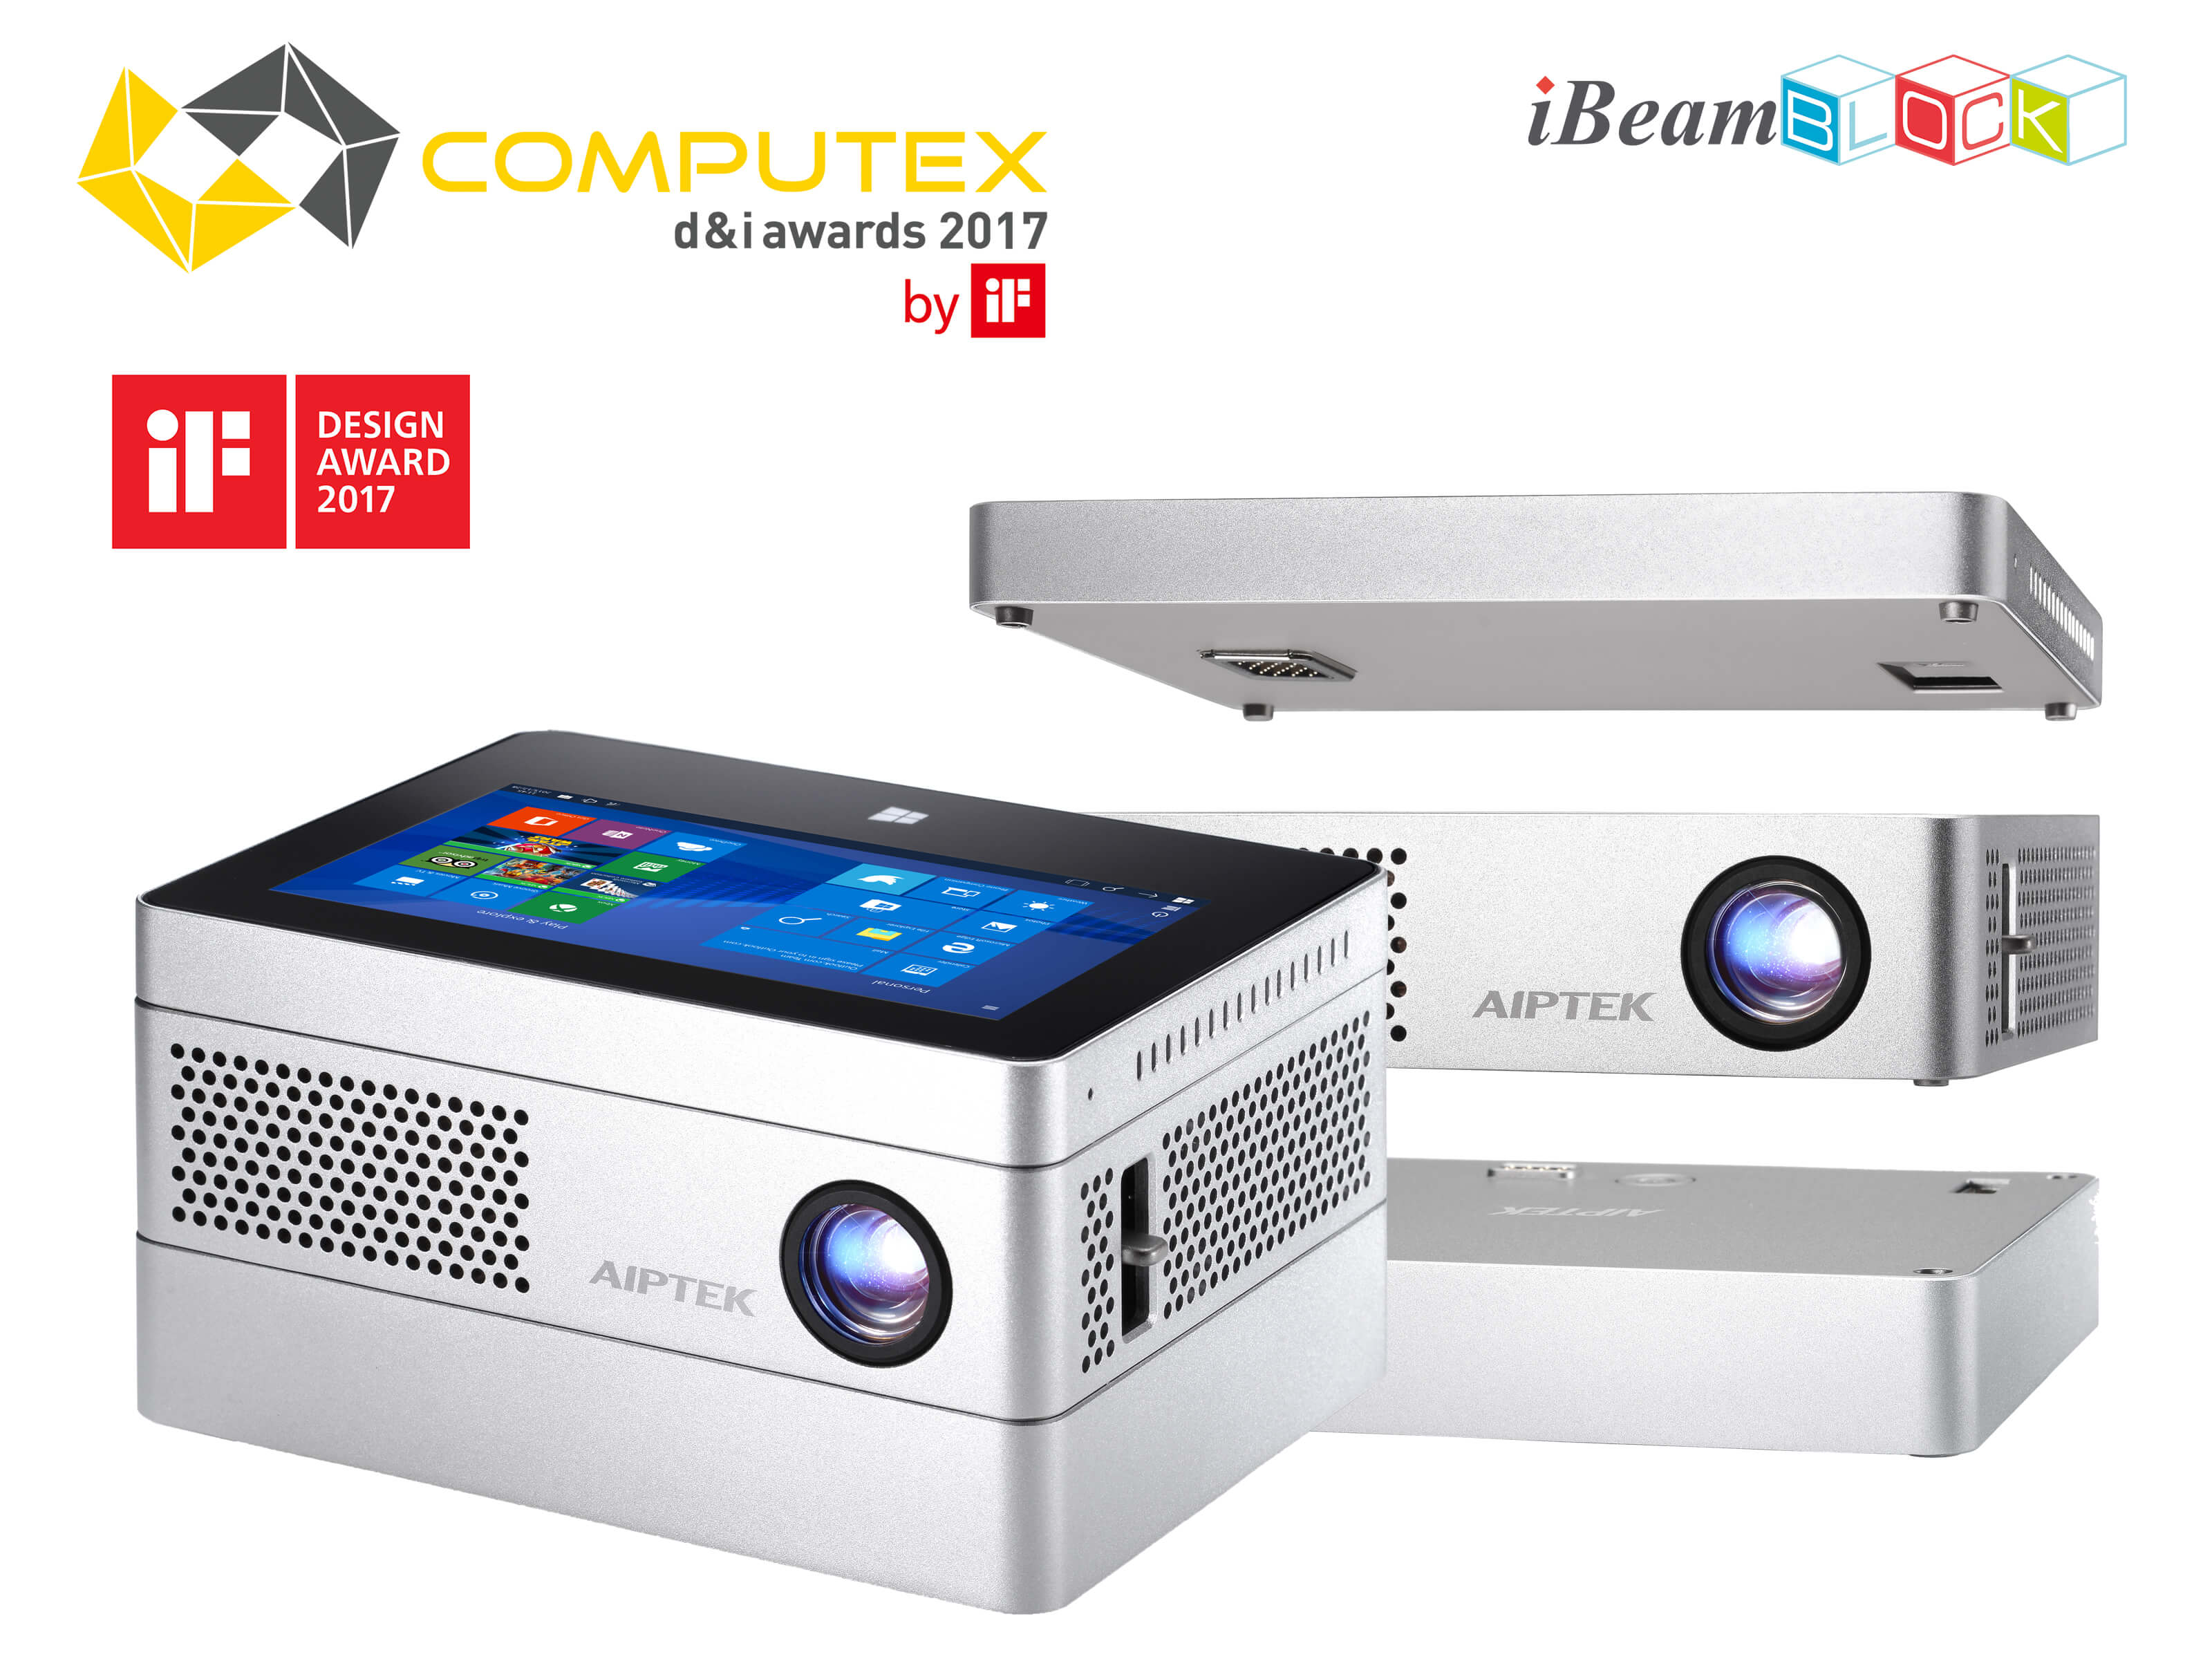 Aiptek iBeamBLOCK Modular Computing Projector - iF Design Awards 2017 Winner - Computex d&i Awards 2017 Winner